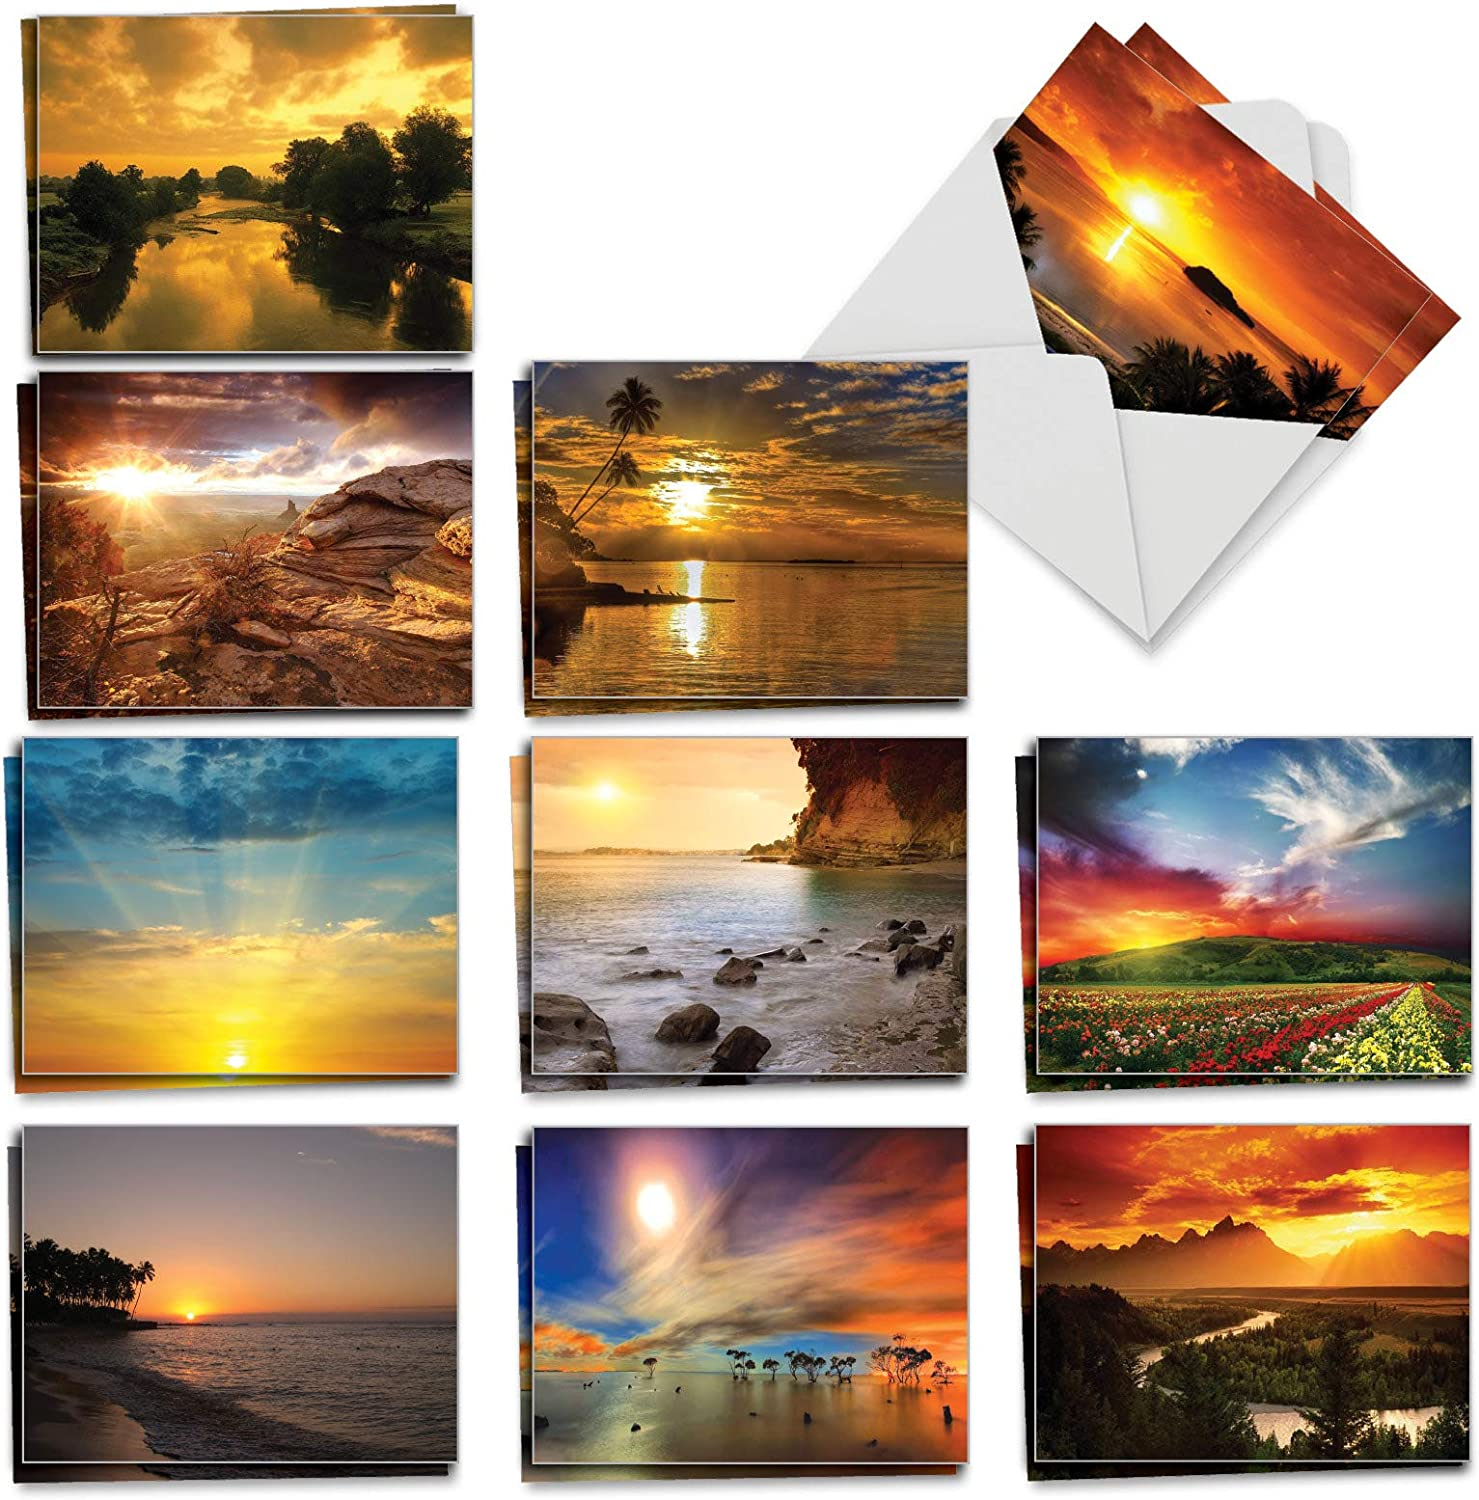 The Best Card Company - 20 Landscape Nature Note Cards Blank (4 x 5.12 Inch) (10 Designs, 2 Each) - Sun Settings AM1740OCB-B2x10